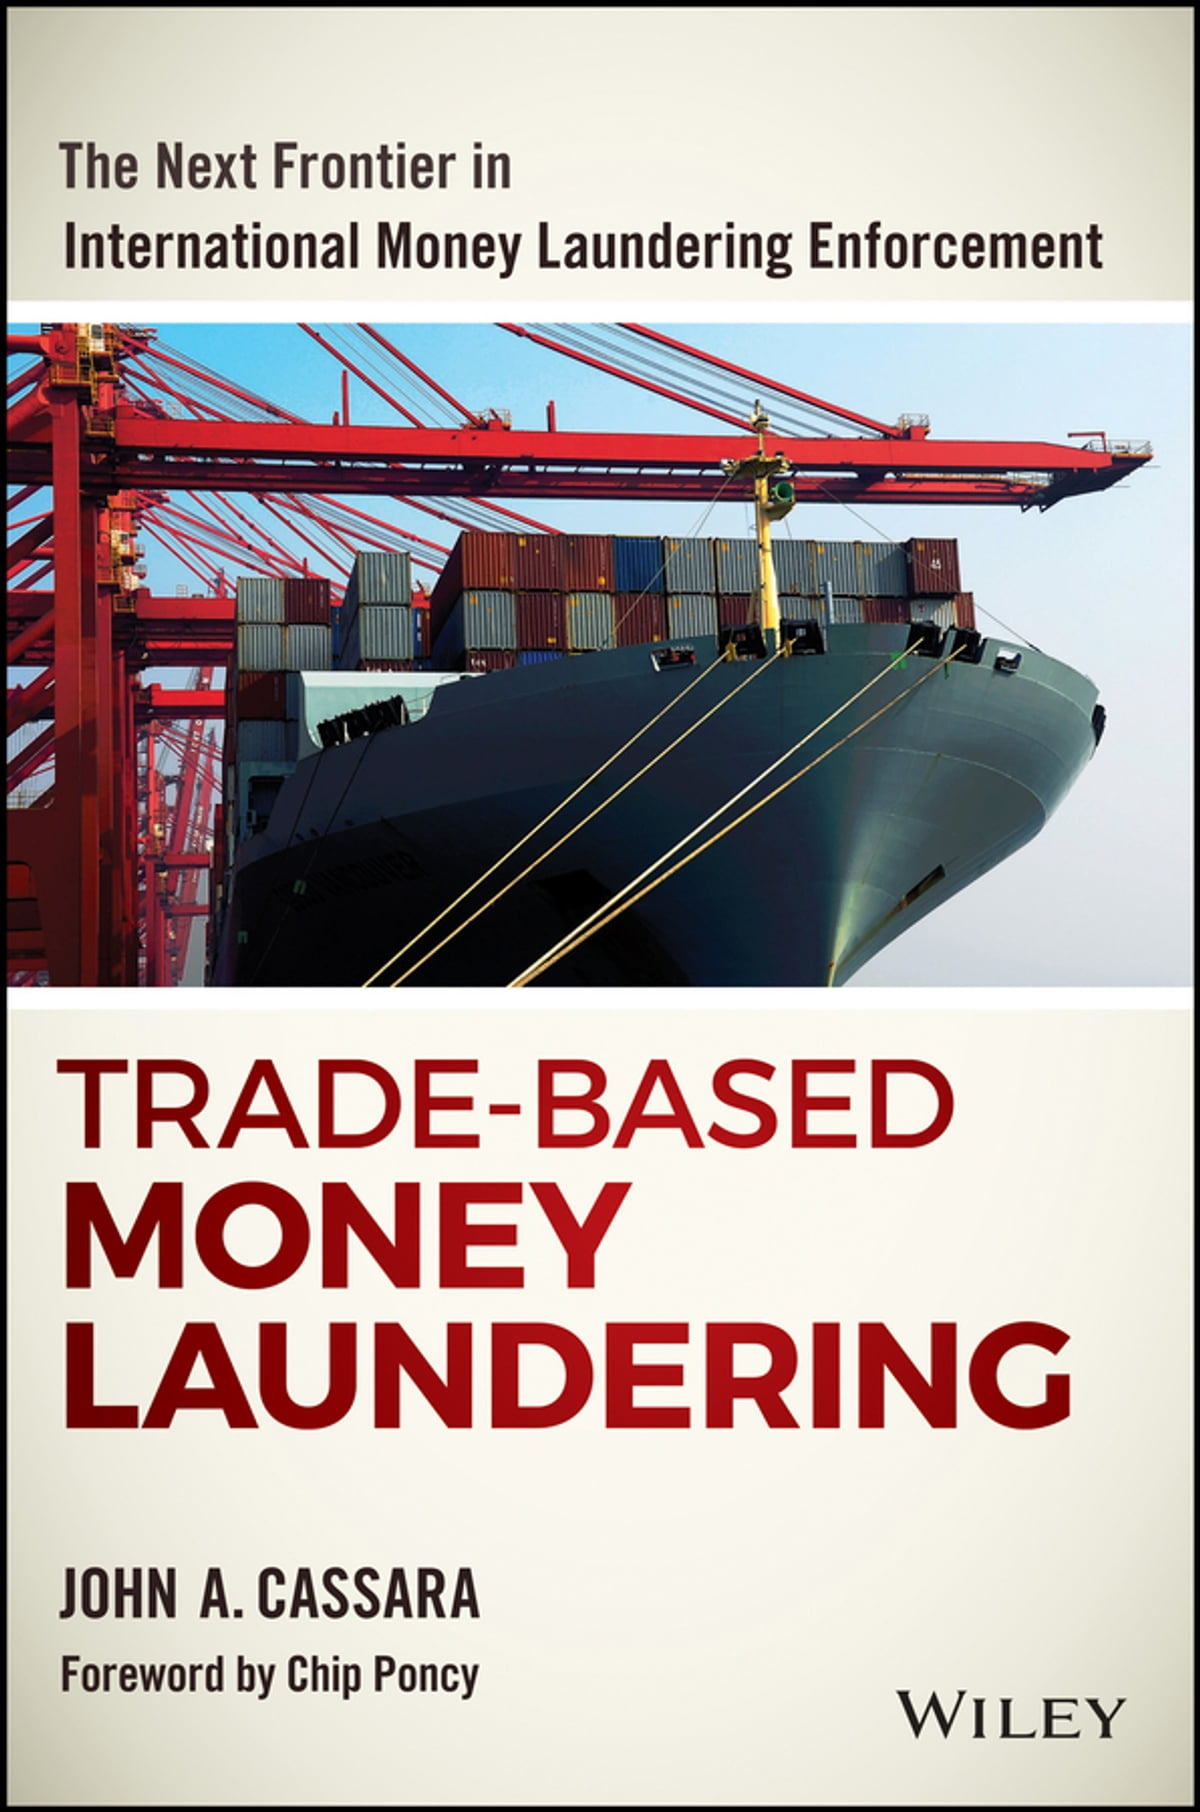 Trade-Based Money Laundering eBook by John A. Cassara - 9781119125396 |  Rakuten Kobo